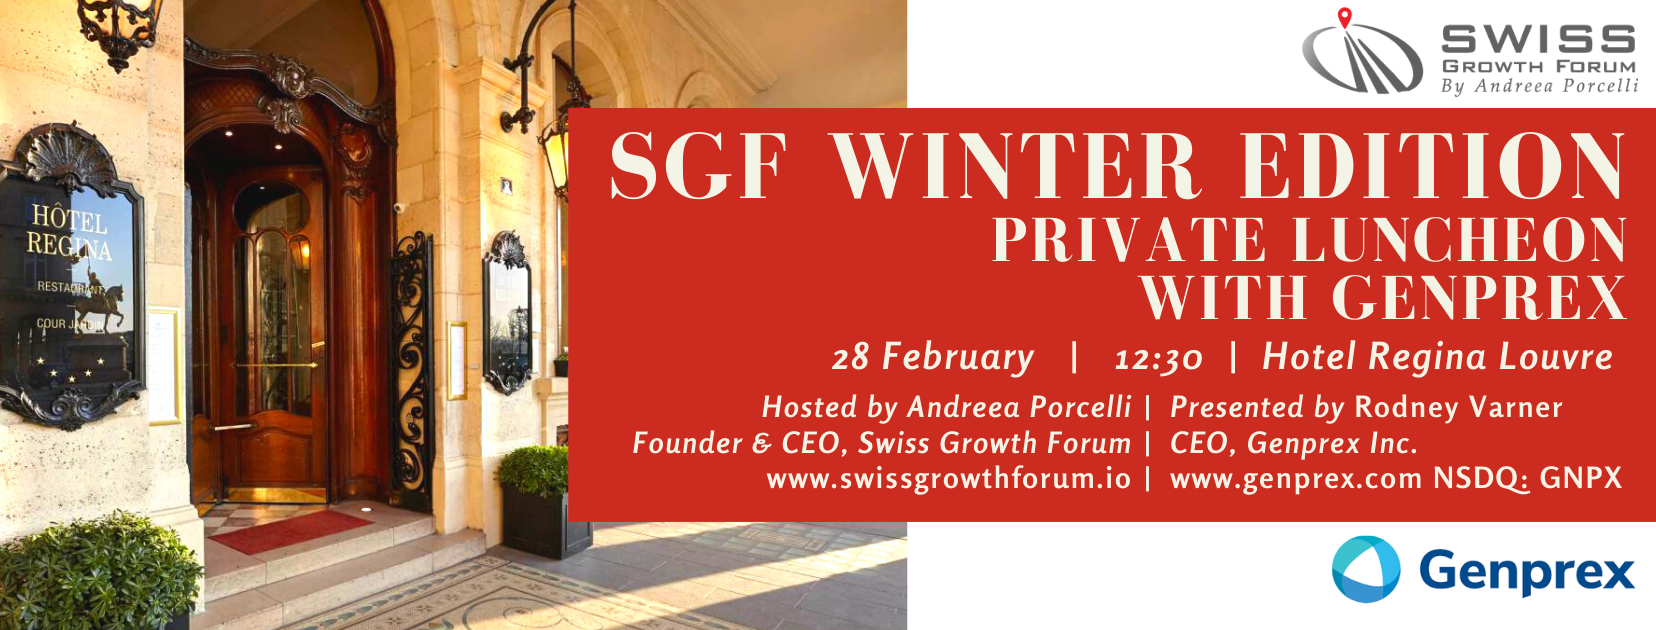 SGF Winter Edition 2020 Private Luncheon with Genprex in Paris organized by Swiss Growth Forum